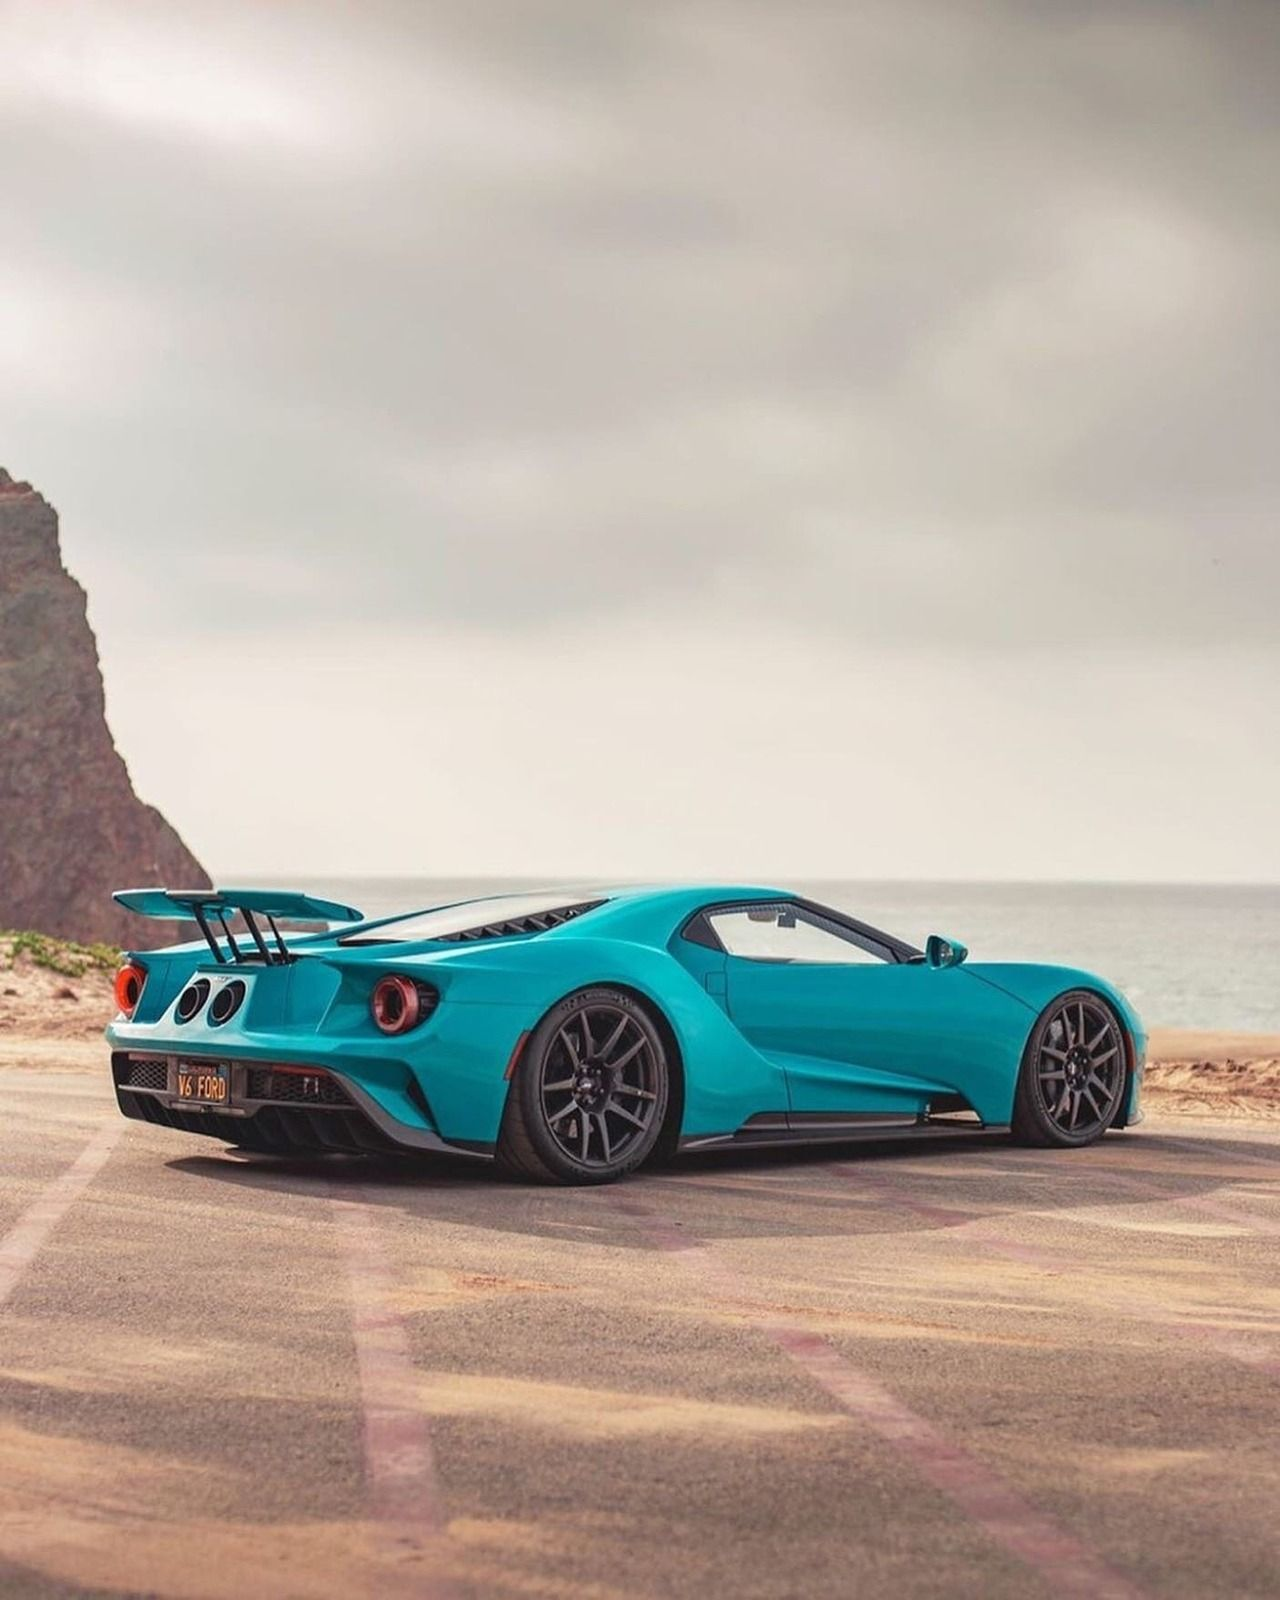 Via Carlifestyle In 2020 Ford Gt Super Cars Car Pictures